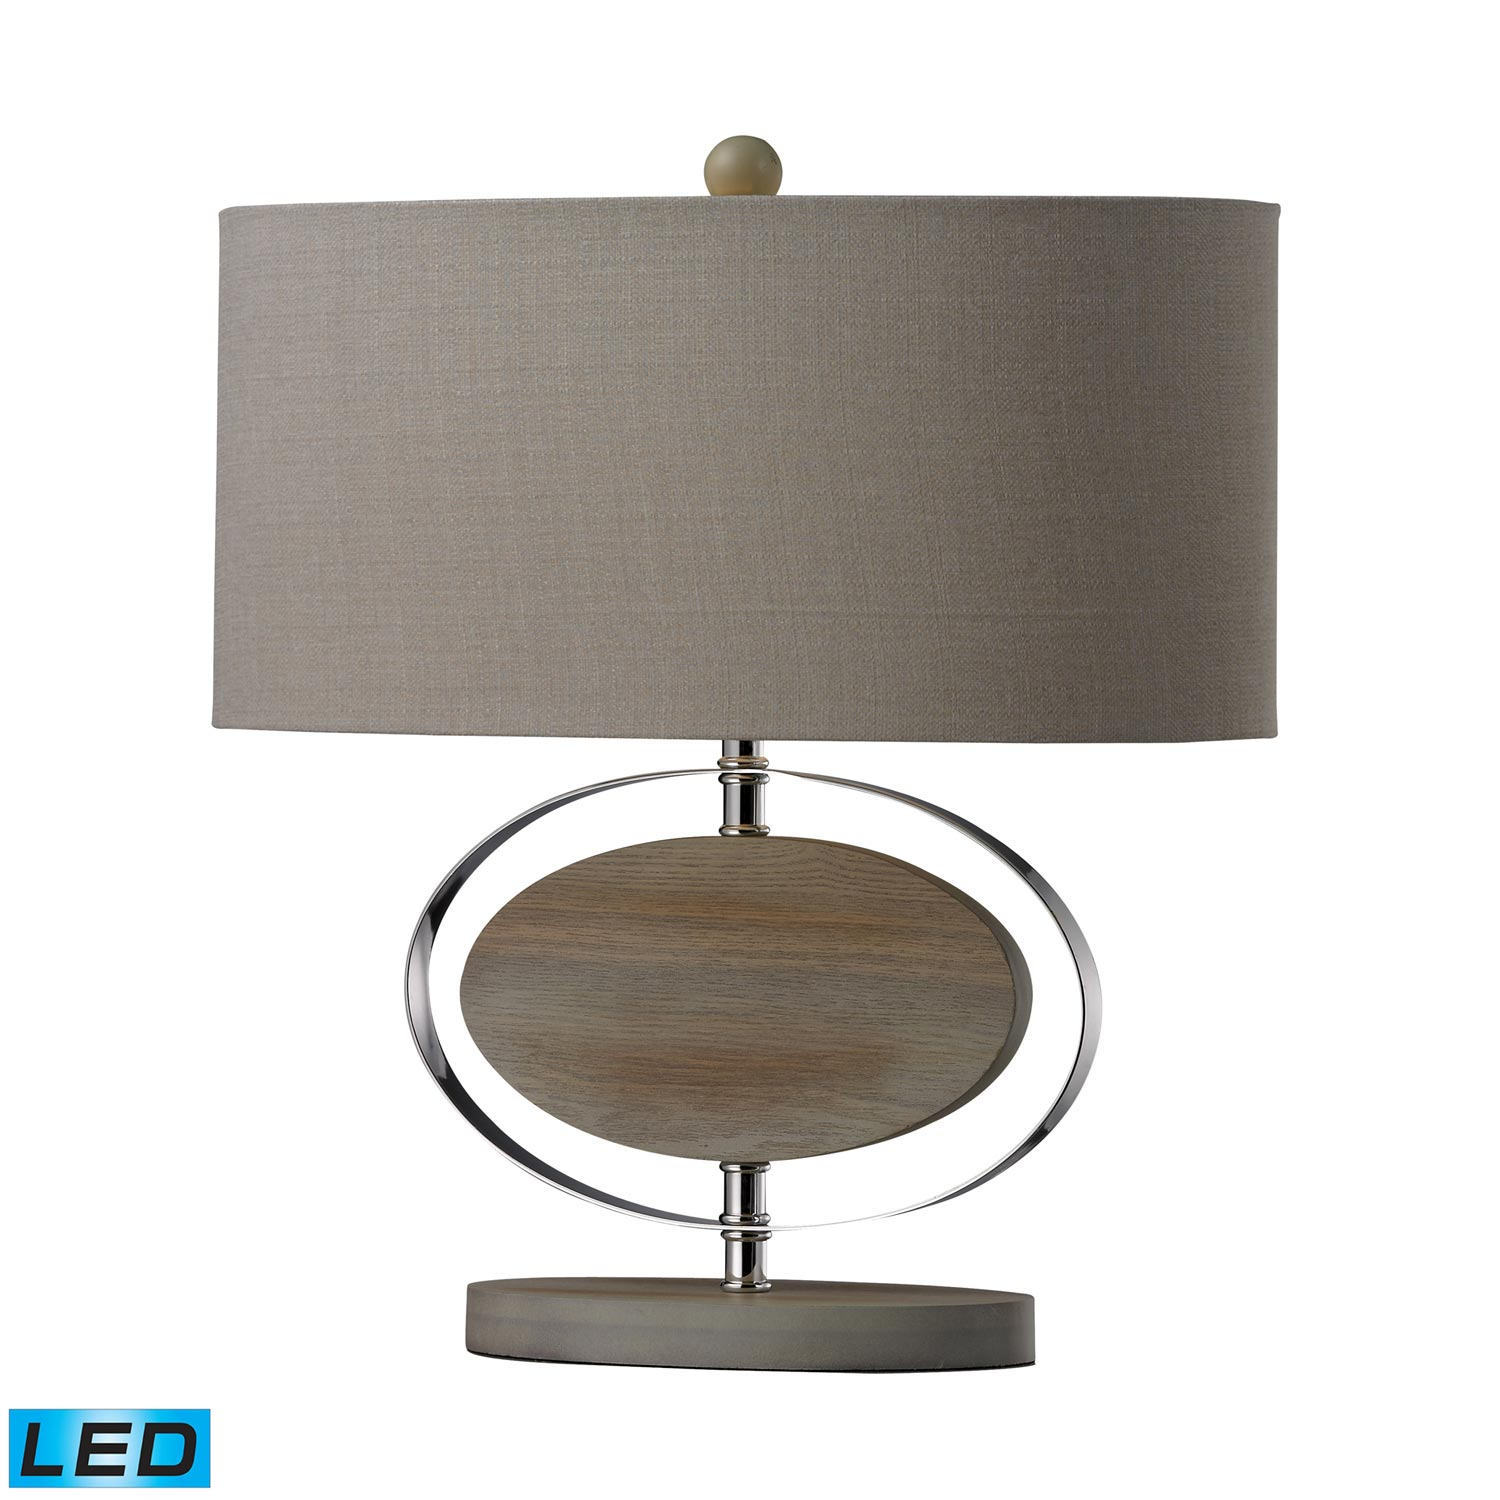 Elk Lighting D2296-LED Hereford Table Lamp - Bleached Wood with Chrom